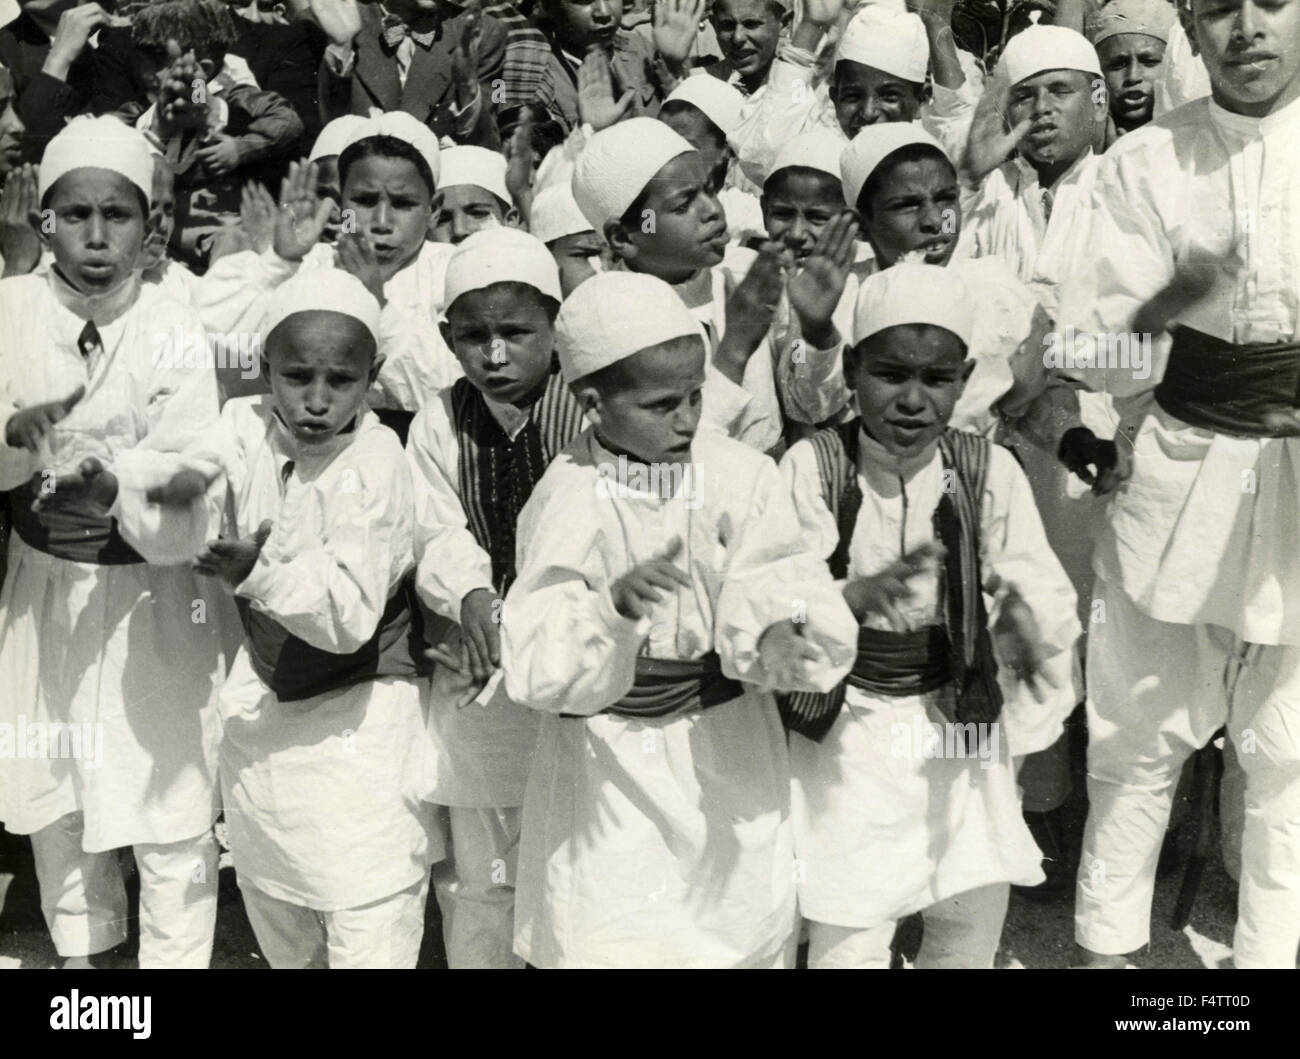 A large group of North African children - Stock Image